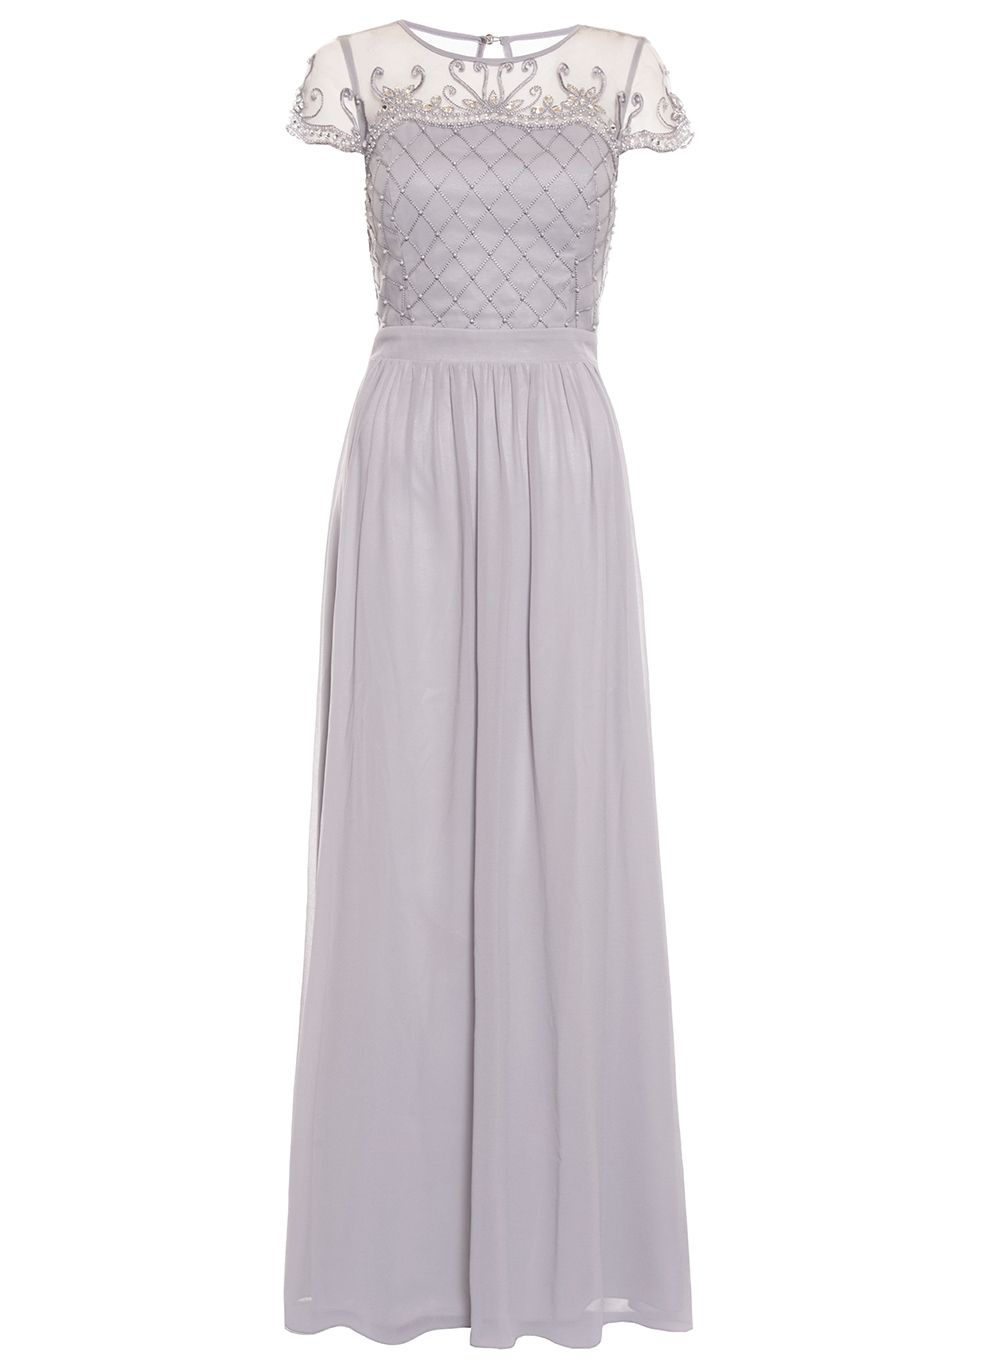 Quiz Grey Chiffon Embellished Maxi Dress, Grey